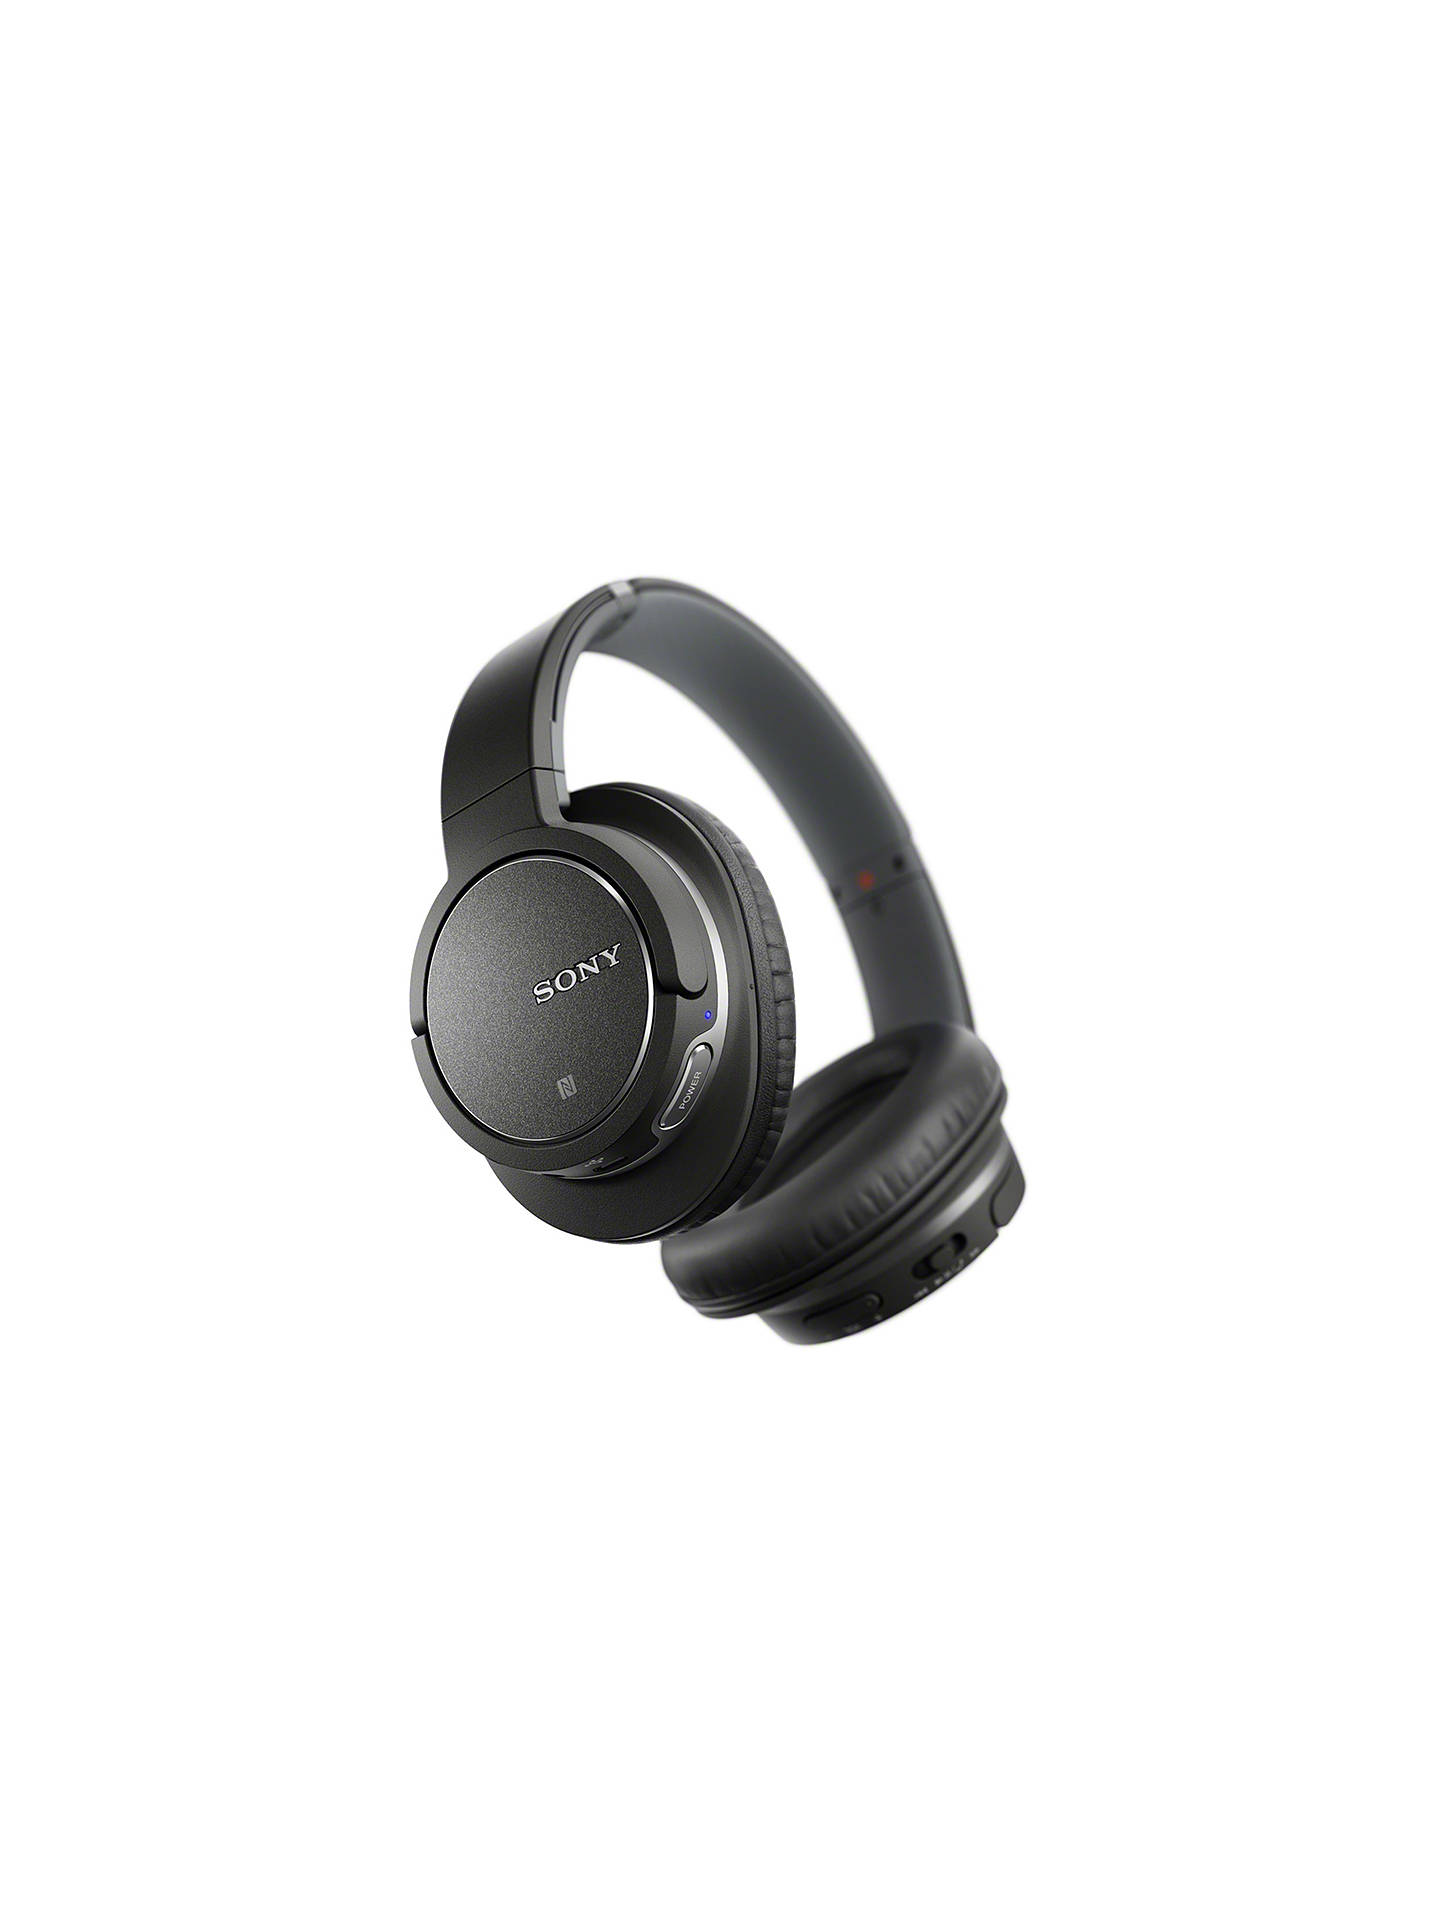 BuySony MDR-ZX770BN Noise Cancelling Bluetooth Over-Ear Headphones with Mic/Remote, Black Online at johnlewis.com